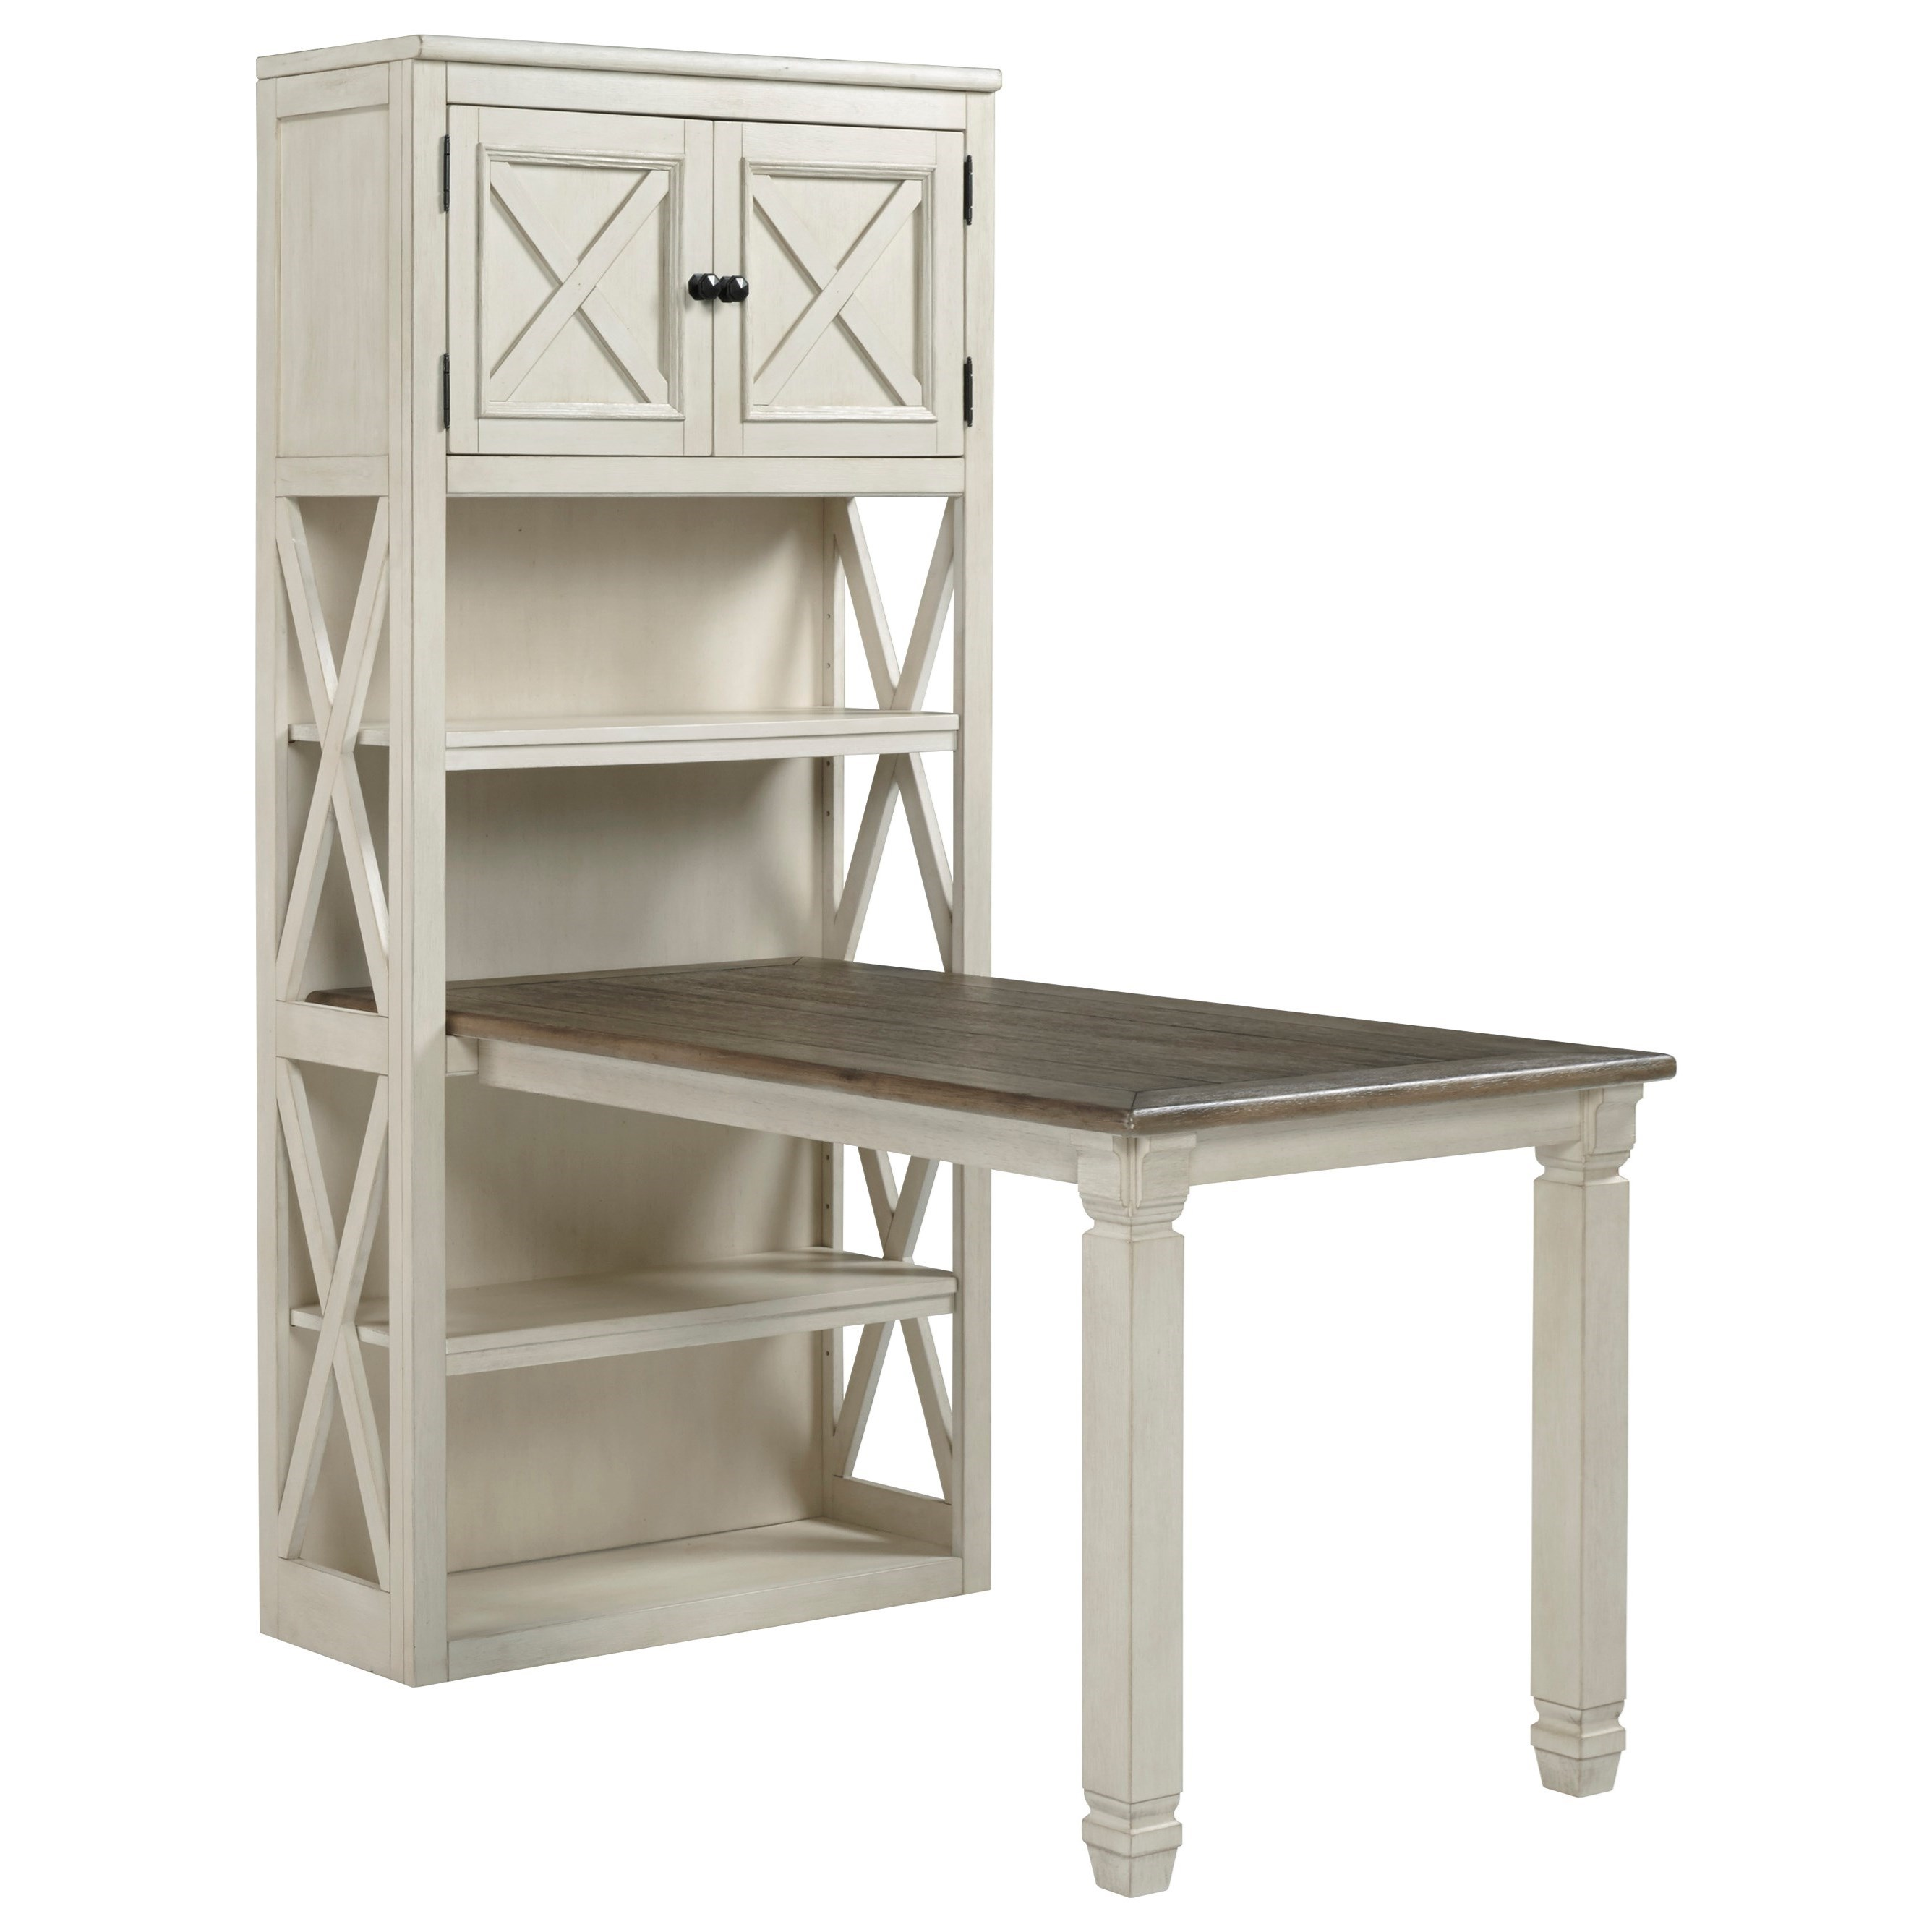 and l book interior shelf img f arts tables furniture side at center bookcases round crafts with circa id revolving oak bookcase table